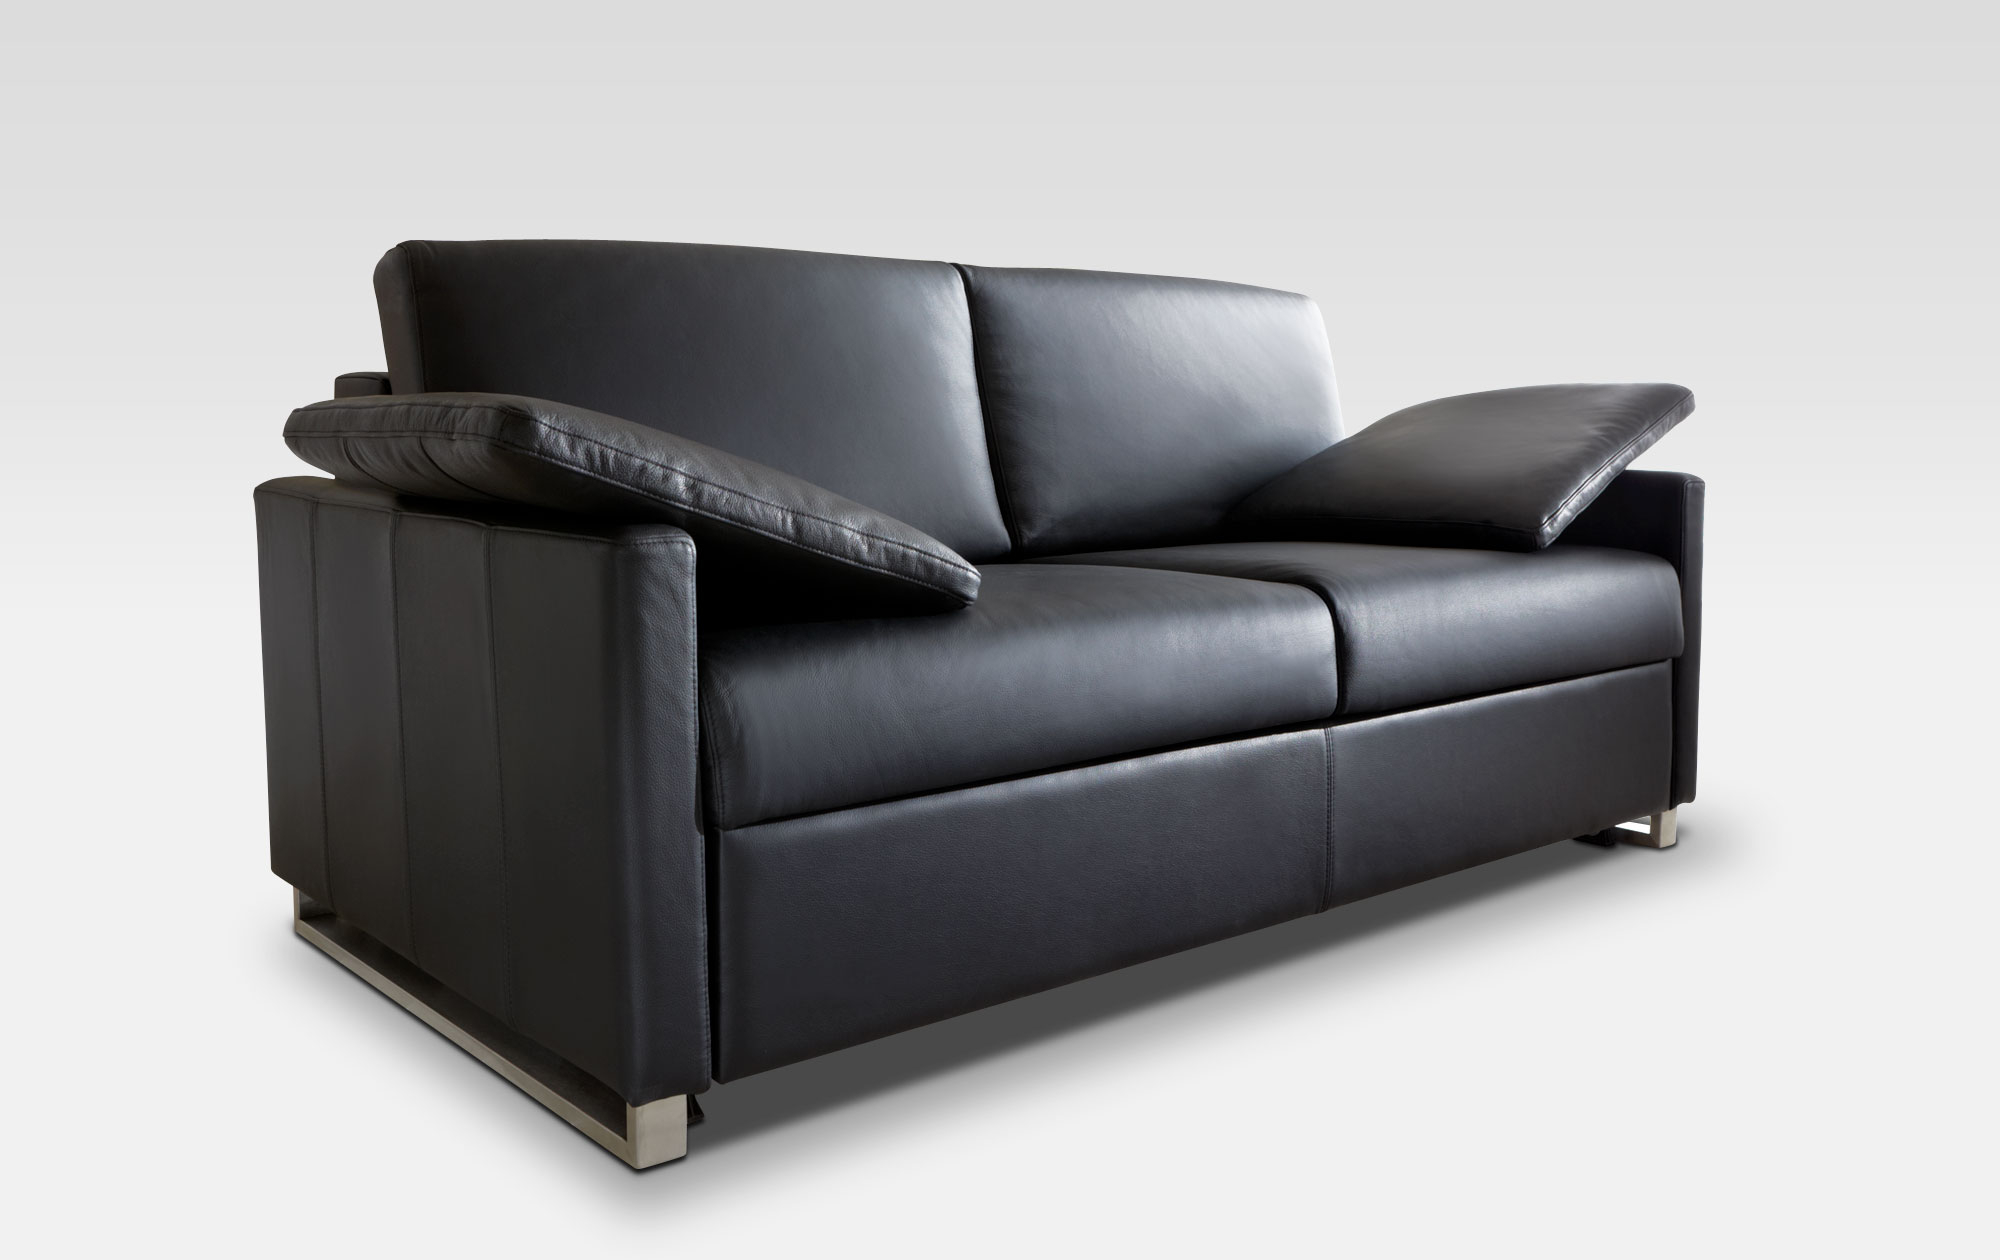 schlafsofa amico von sessel. Black Bedroom Furniture Sets. Home Design Ideas